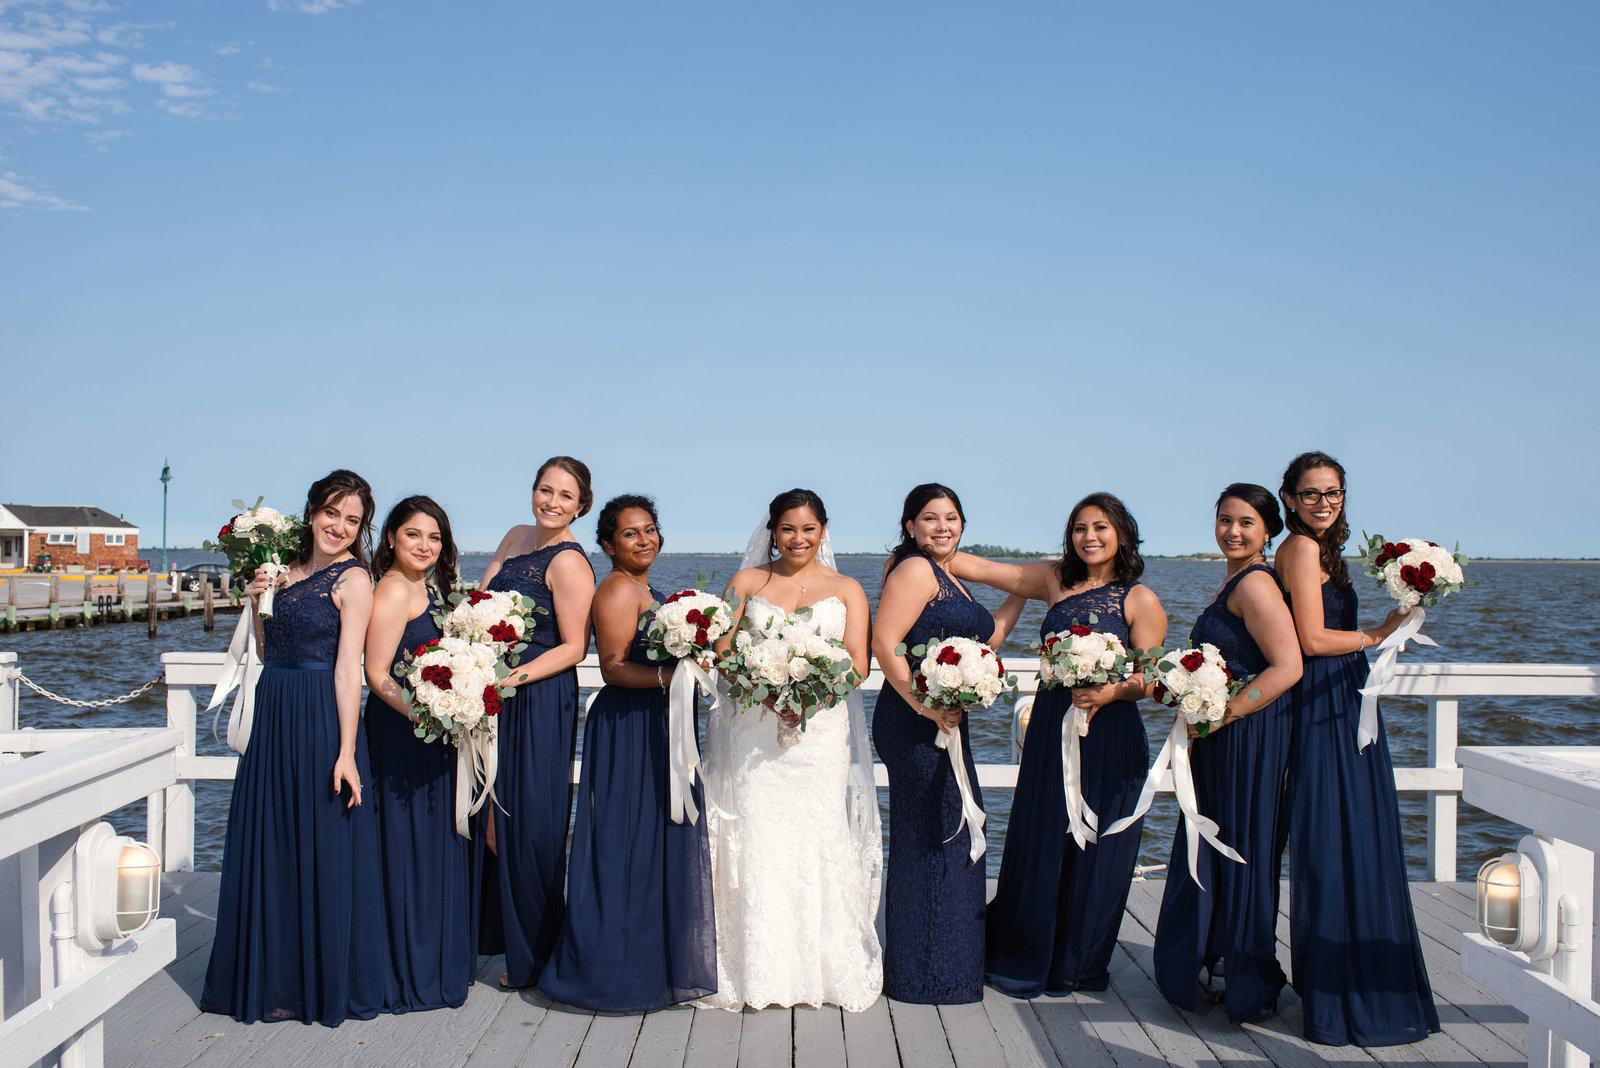 Bride and bridesmaids on dock